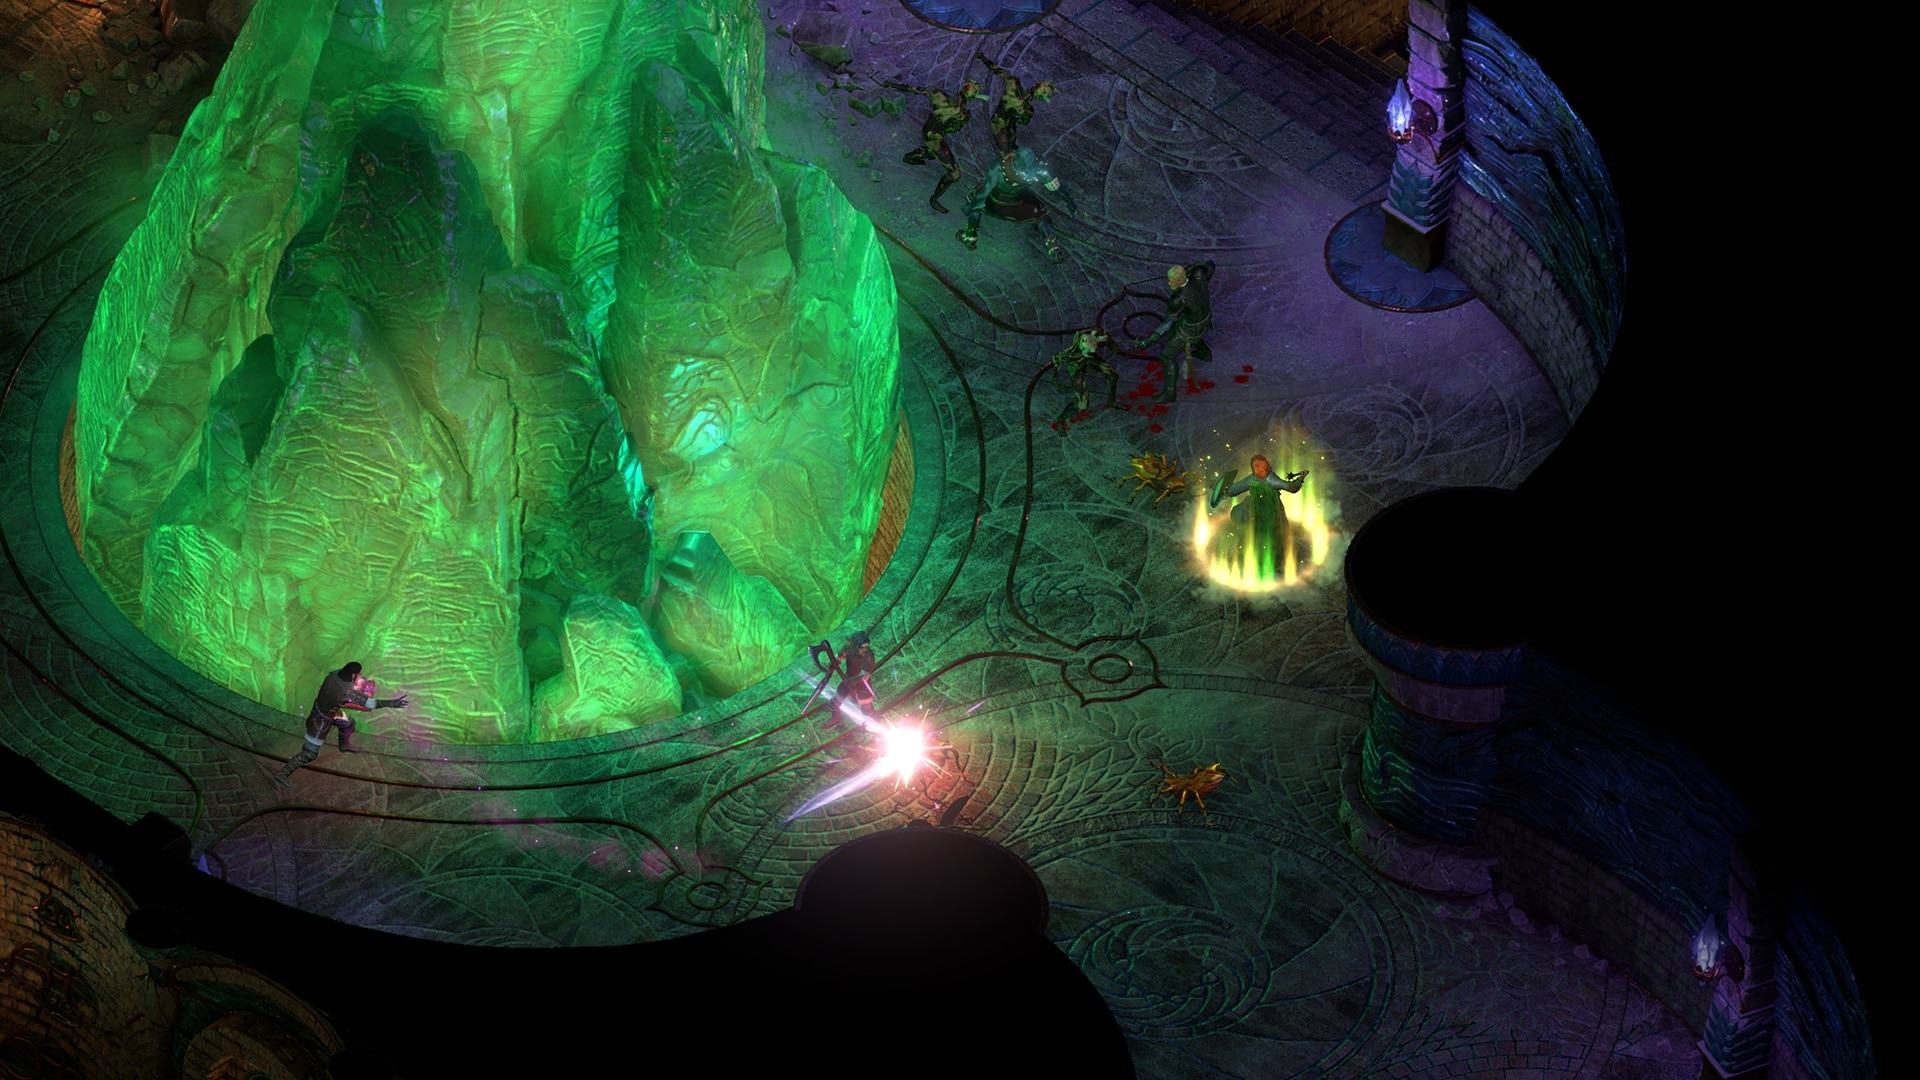 The bright green Adra not only looks imposing, but also holds a lot of power.